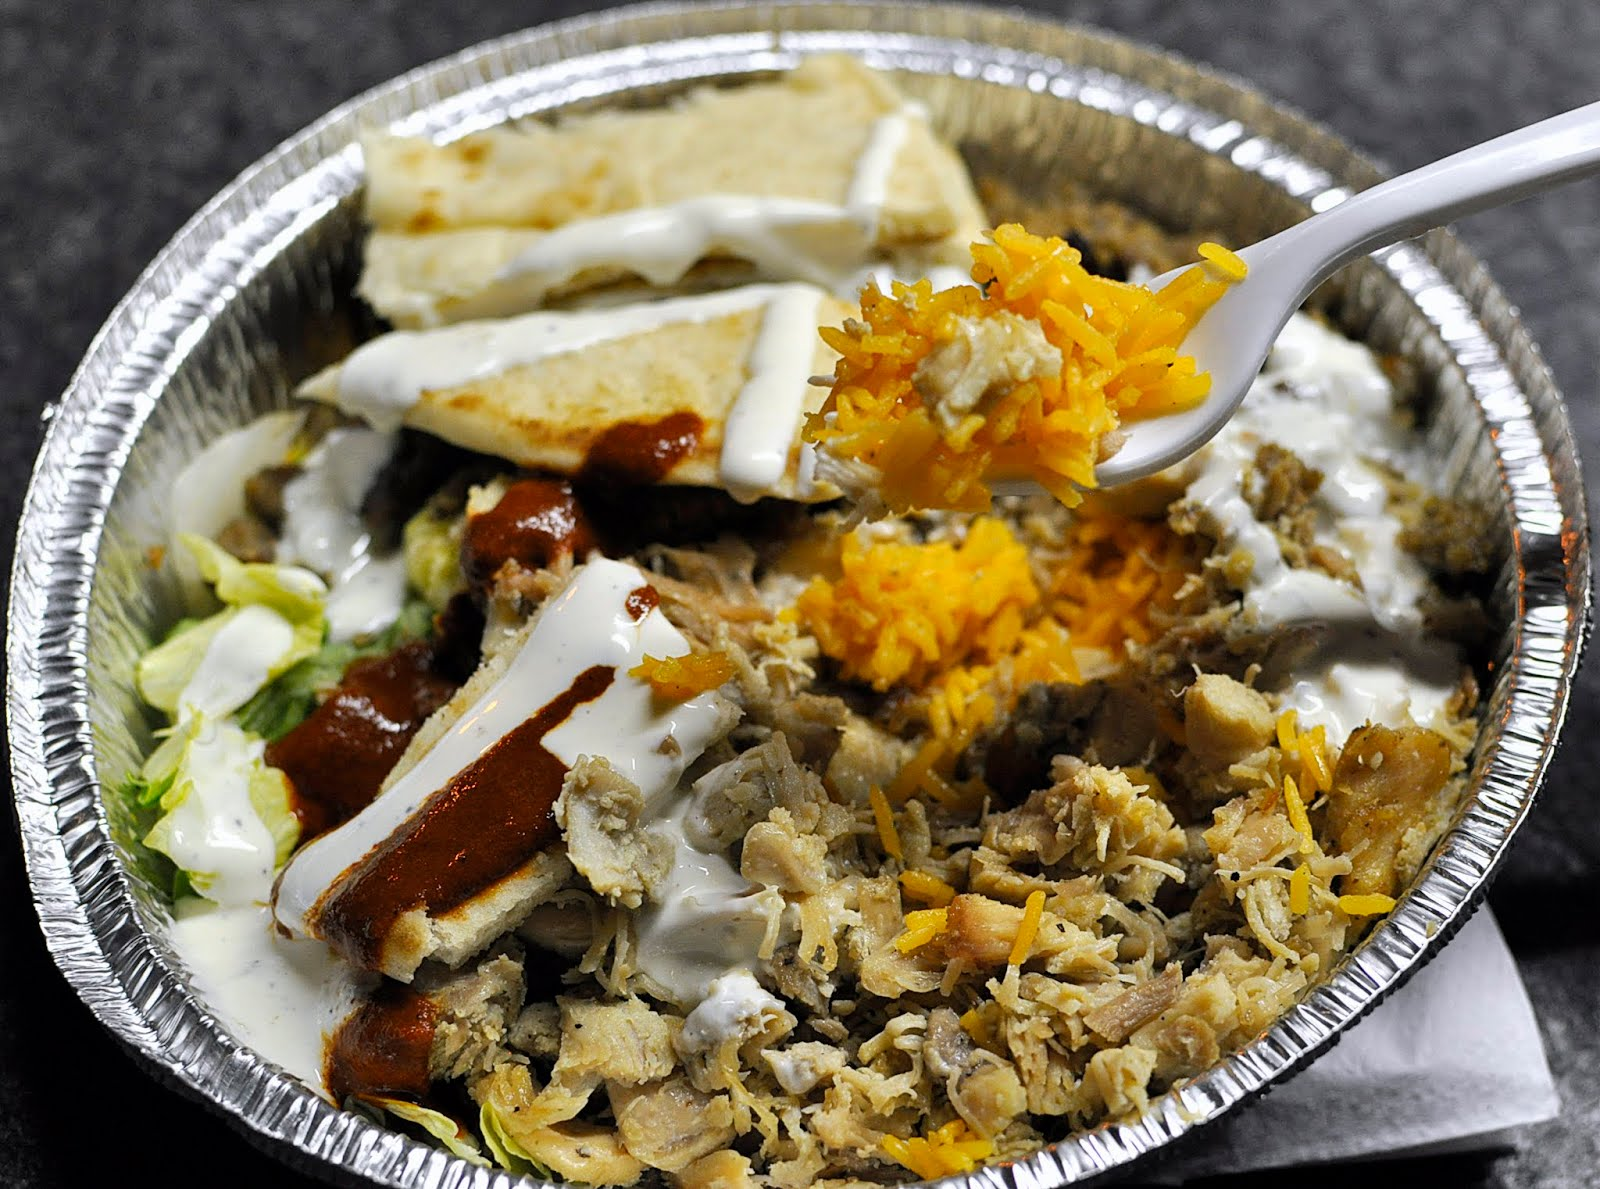 What Is The White Sauce From Halal Food Truck